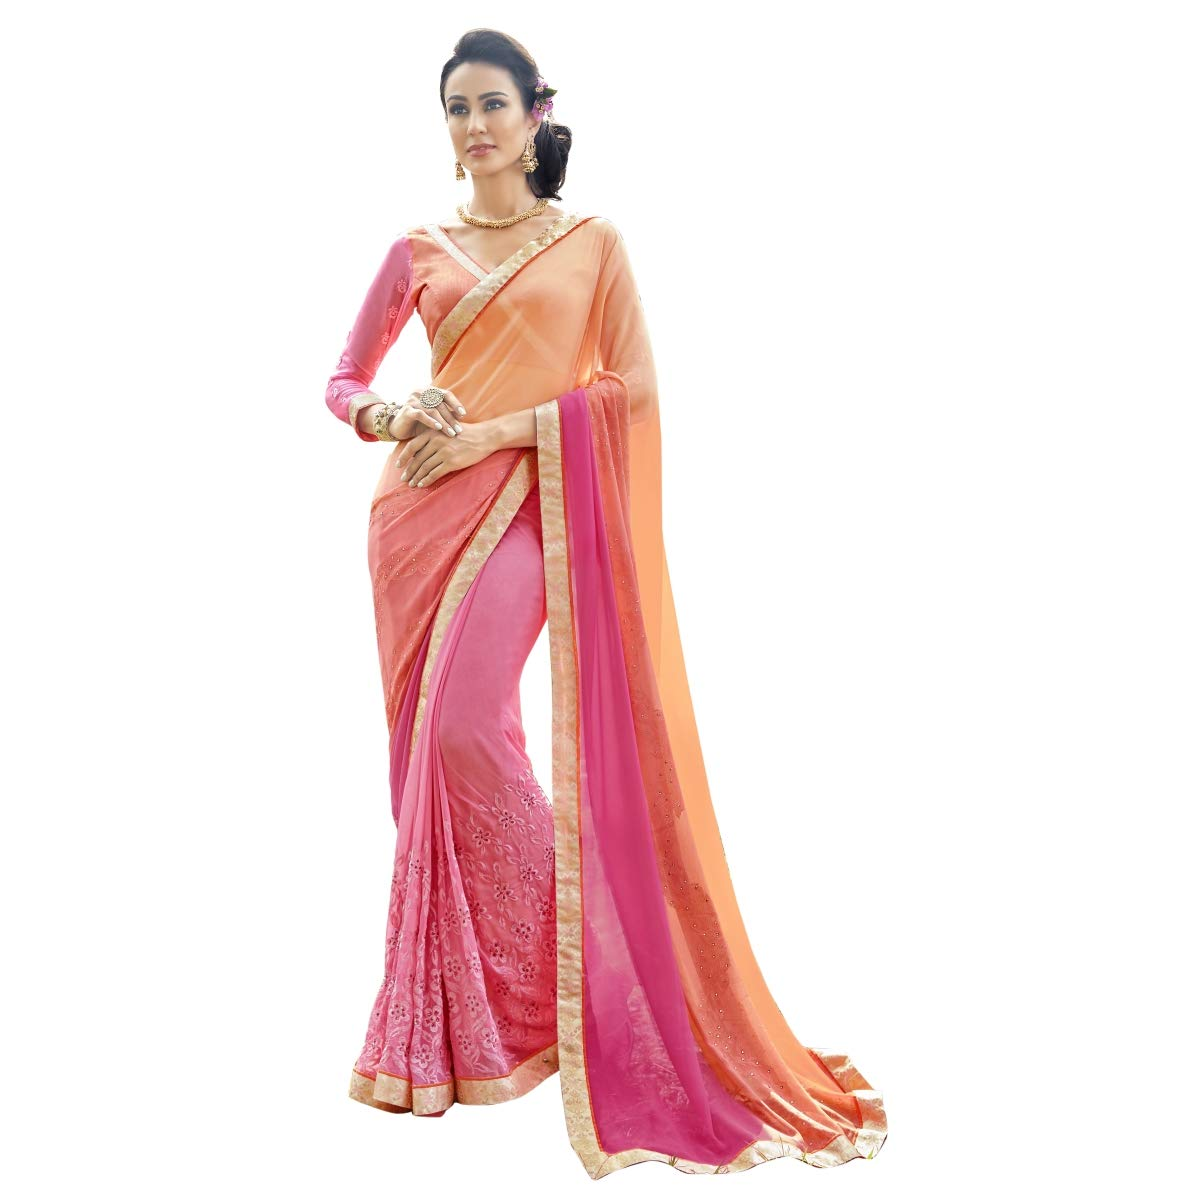 cb1d5acbe1 Triveni Saree Pink Color Pure Georgette Fabric Traditional Saree For Women:  Amazon.in: Clothing & Accessories